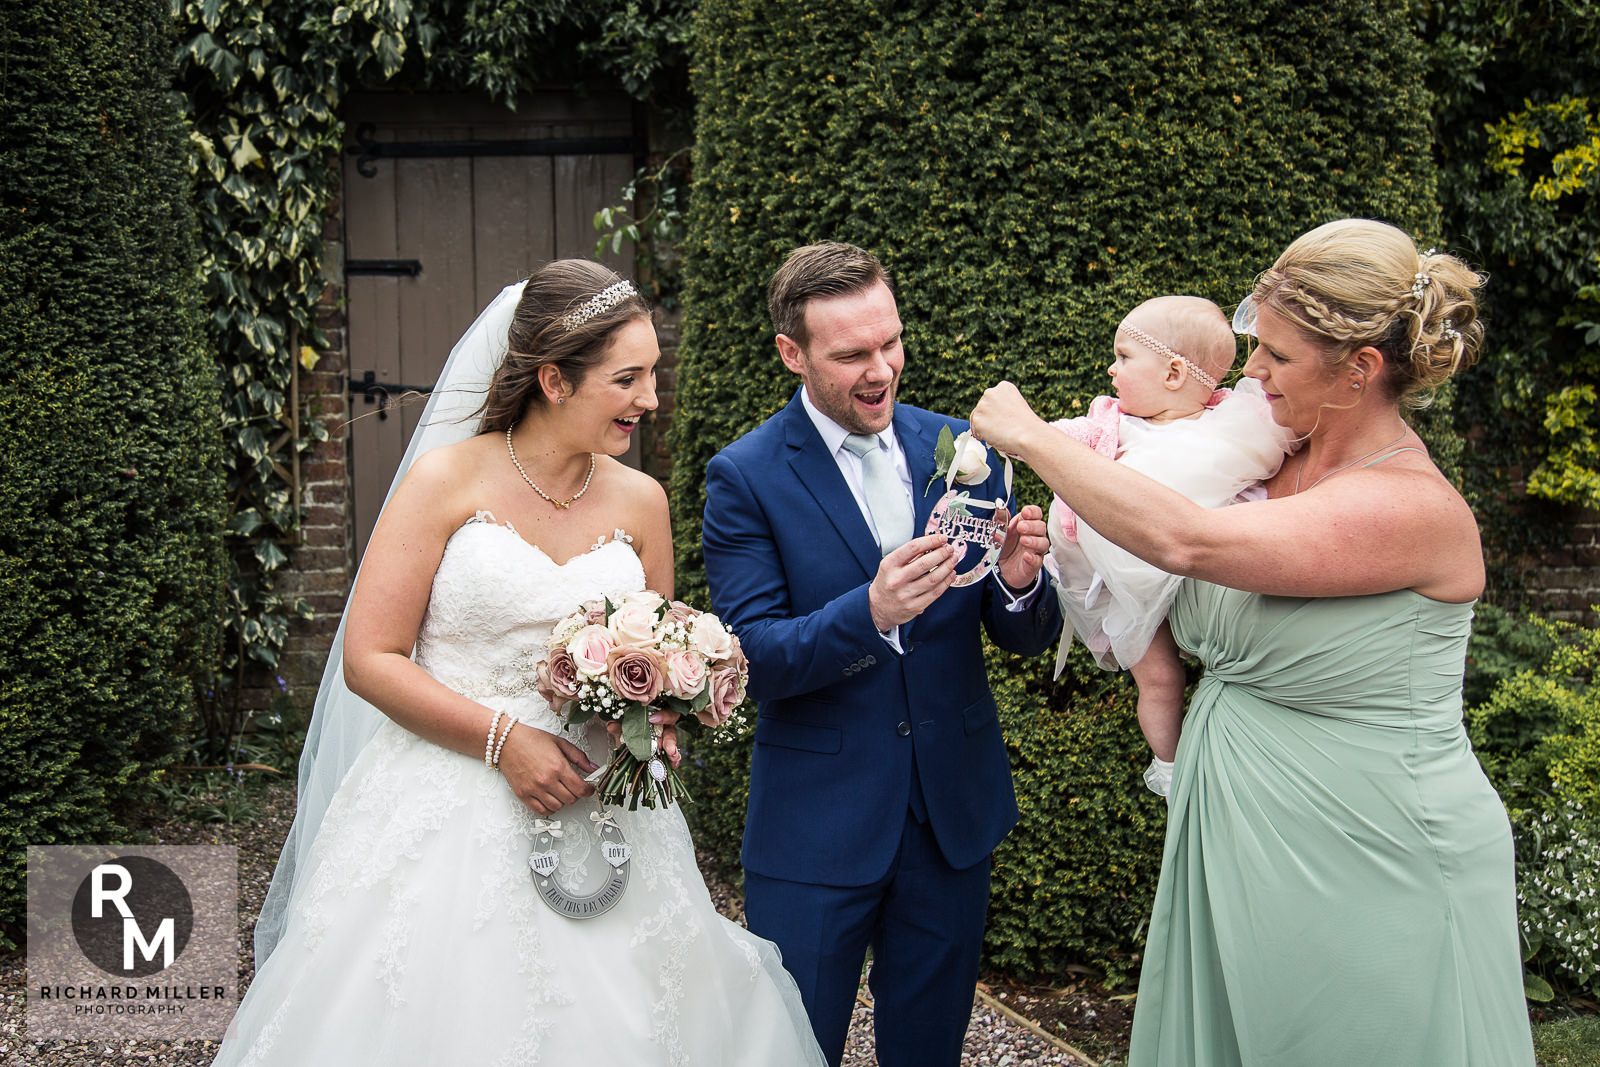 P R 30 - Pete & Roxy's Soughton Hall Outdoor Wedding